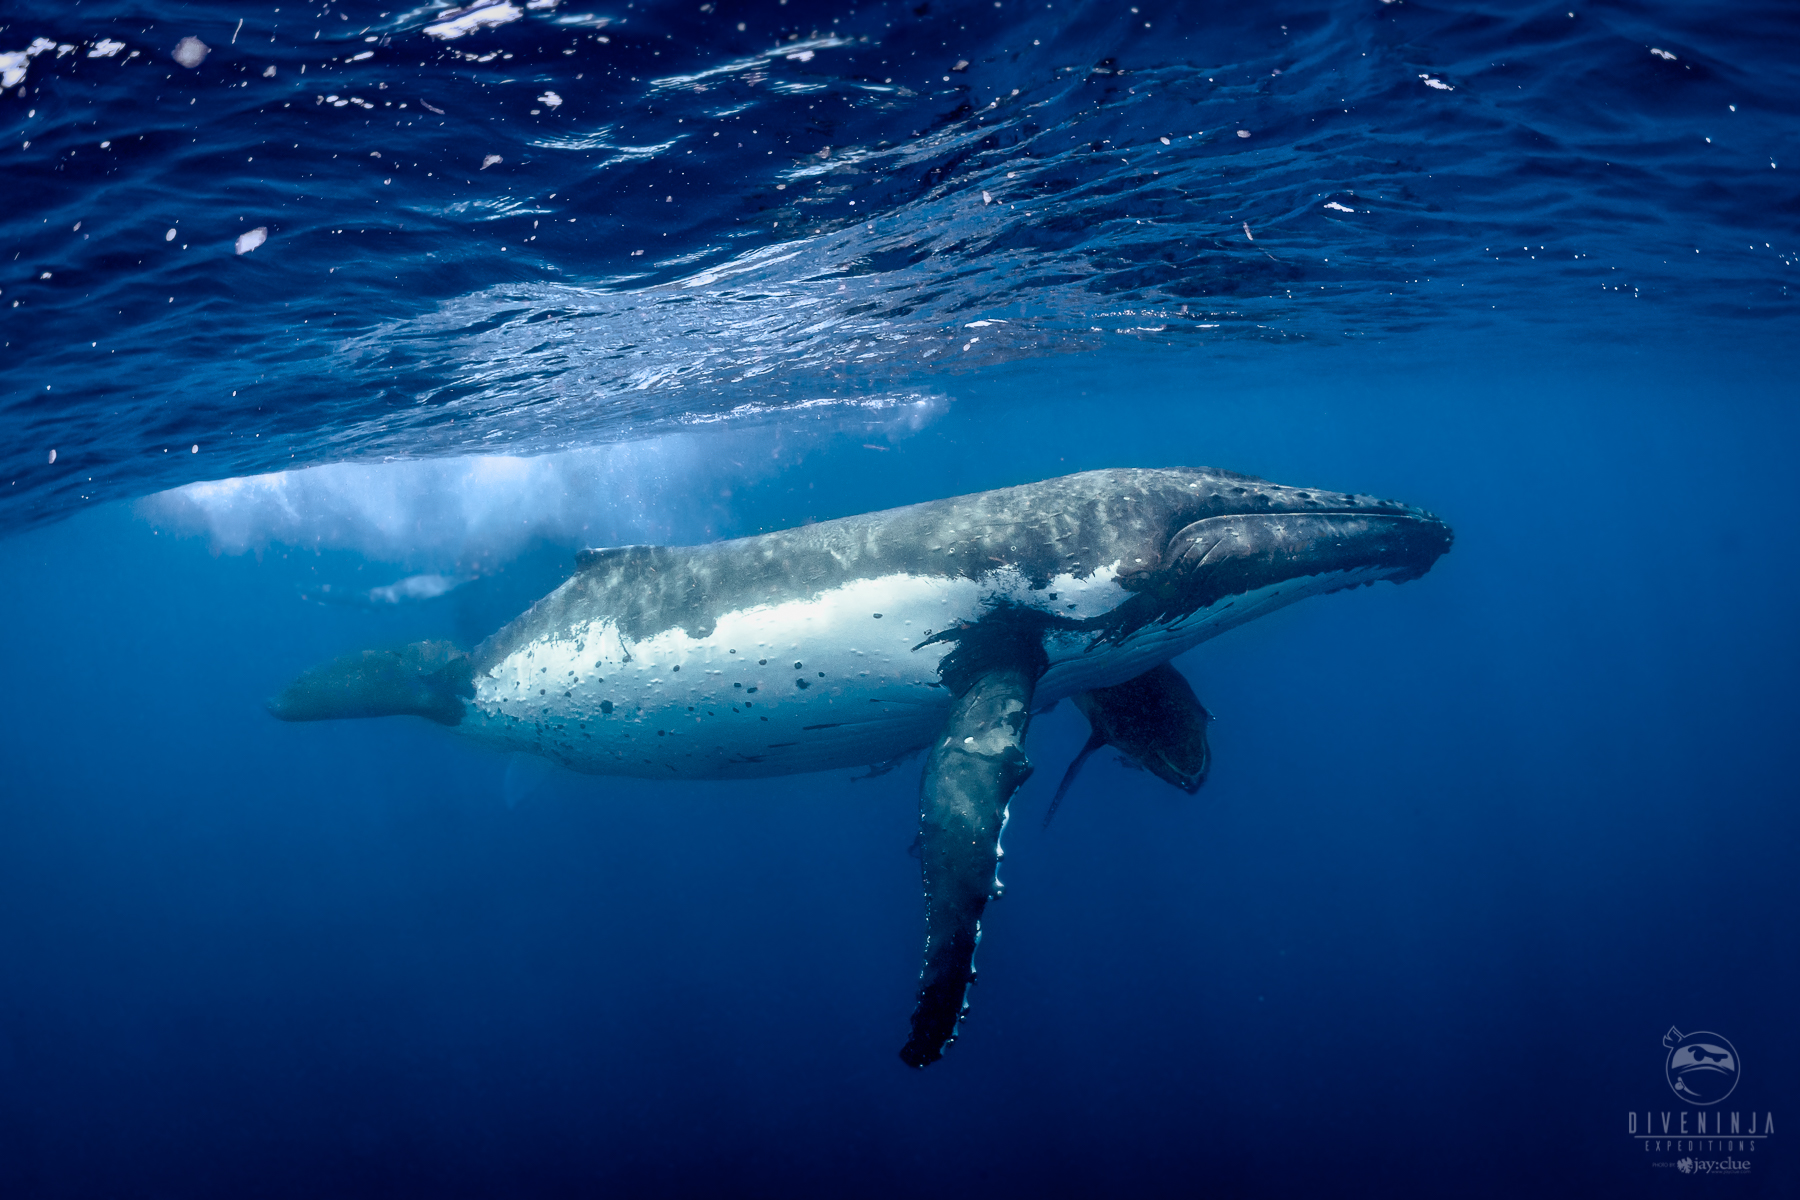 Whale entanglement is a huge issue - find out more in our Ninja Whale Defender course